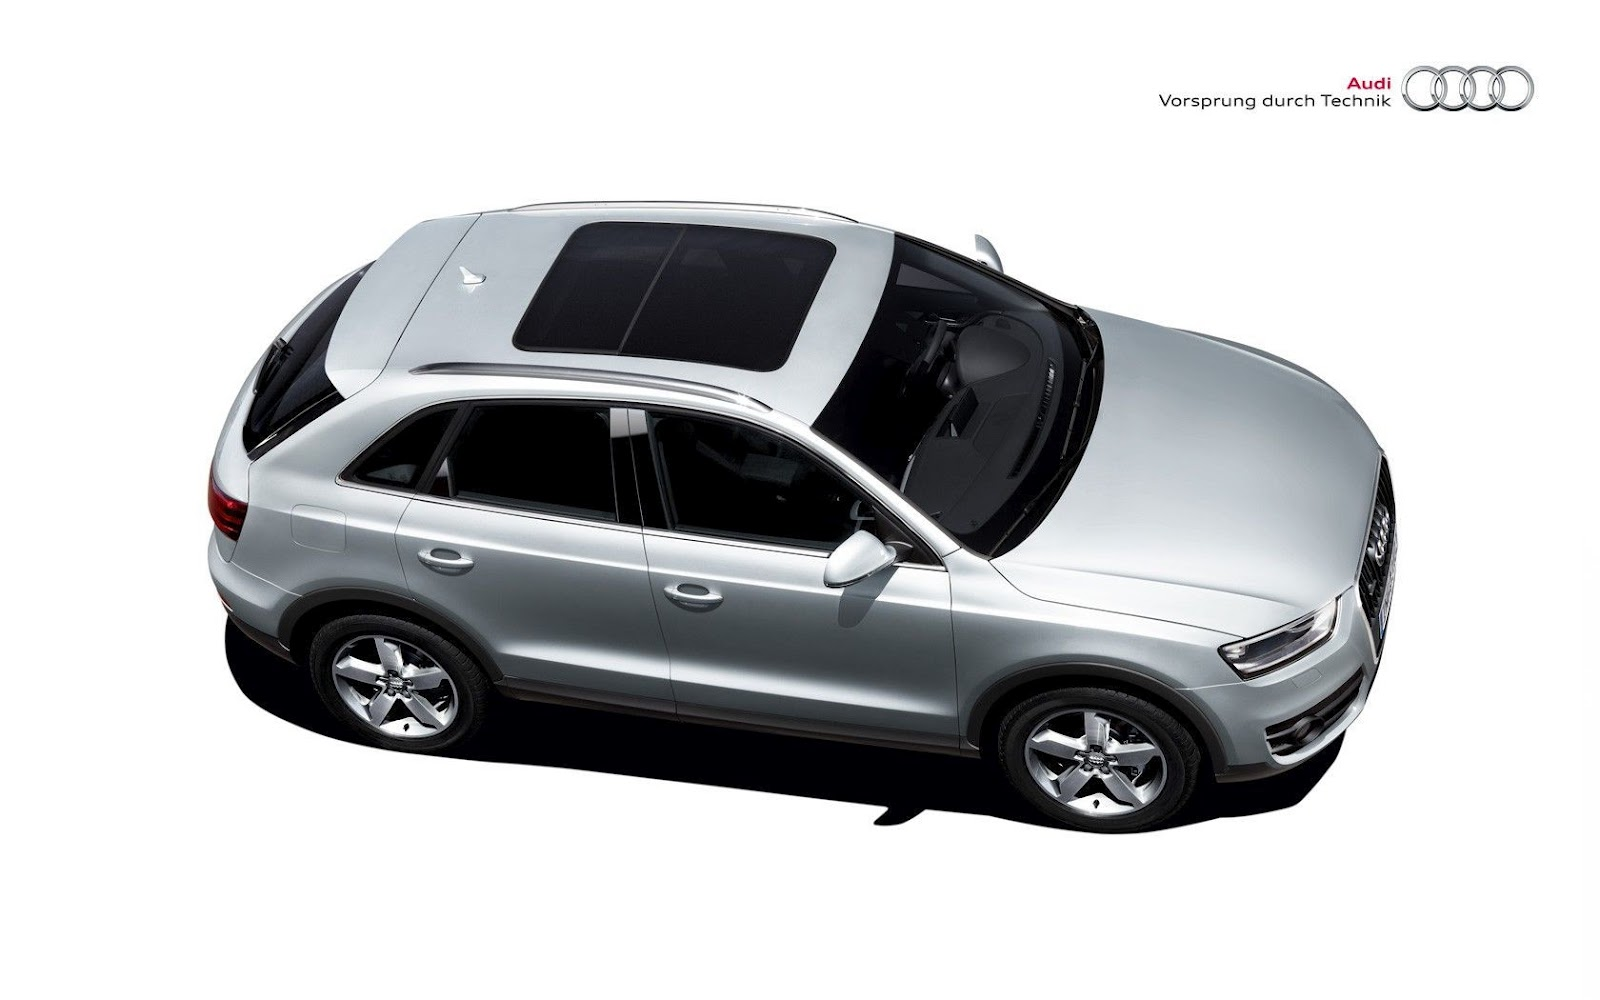 audi q3 in india 2012 review specification road test. Black Bedroom Furniture Sets. Home Design Ideas